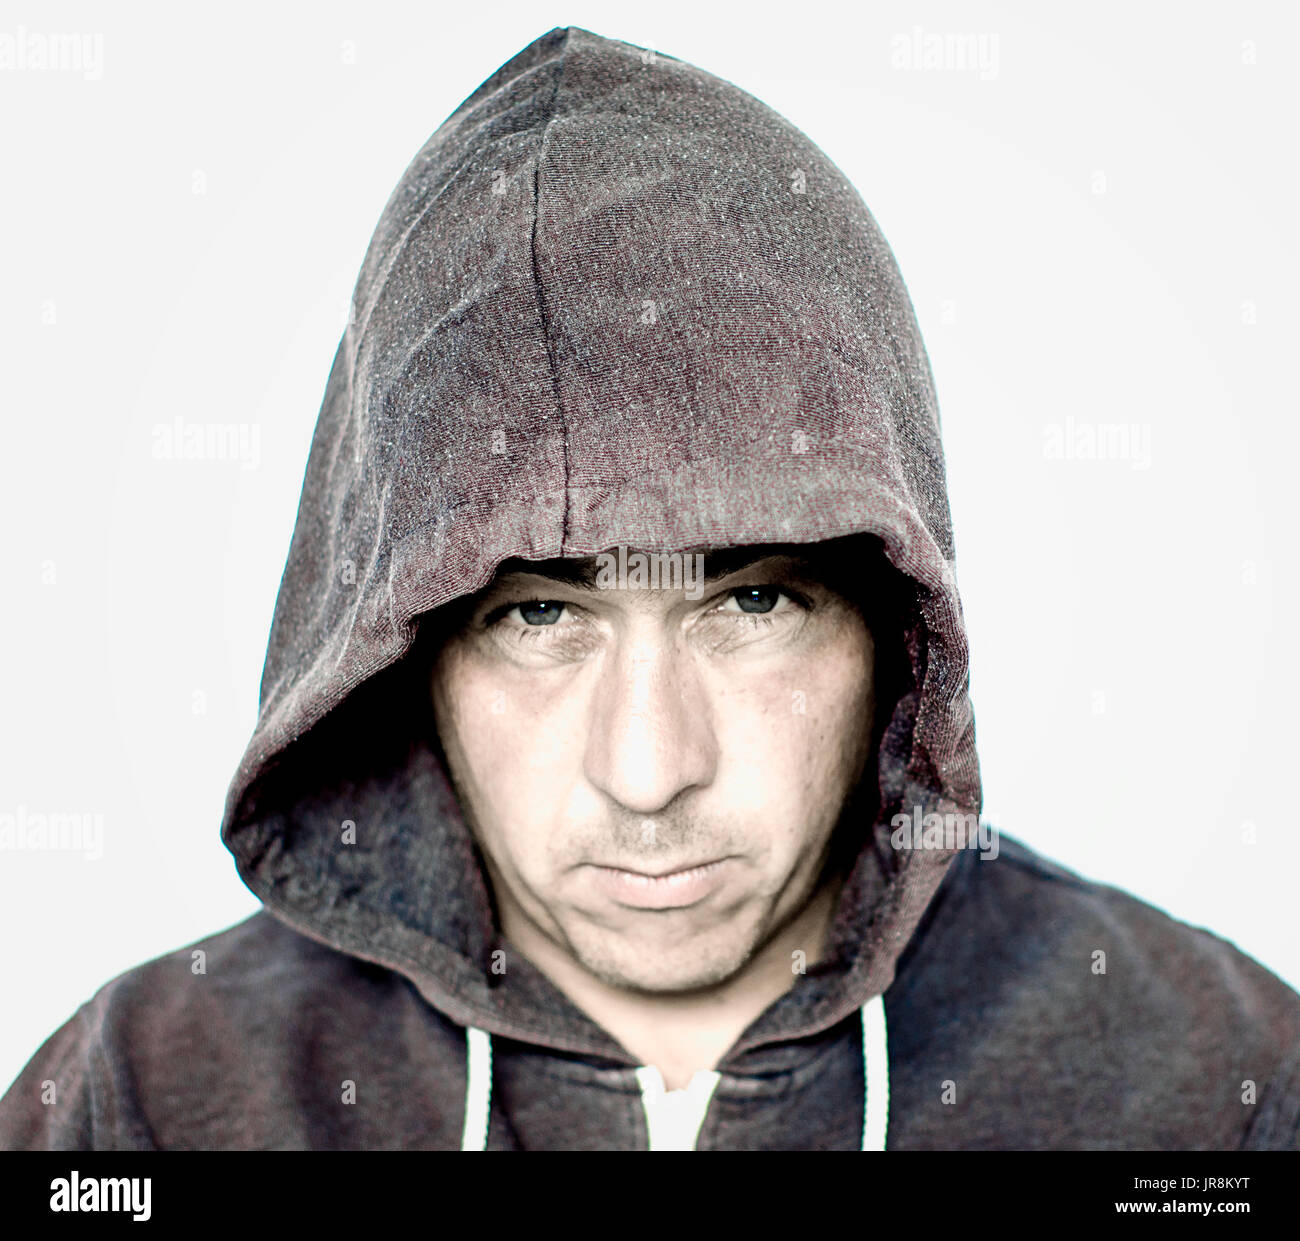 Man with a mean and moody face wearing a grey hooded top with intentional grain and a grunge look - Stock Image